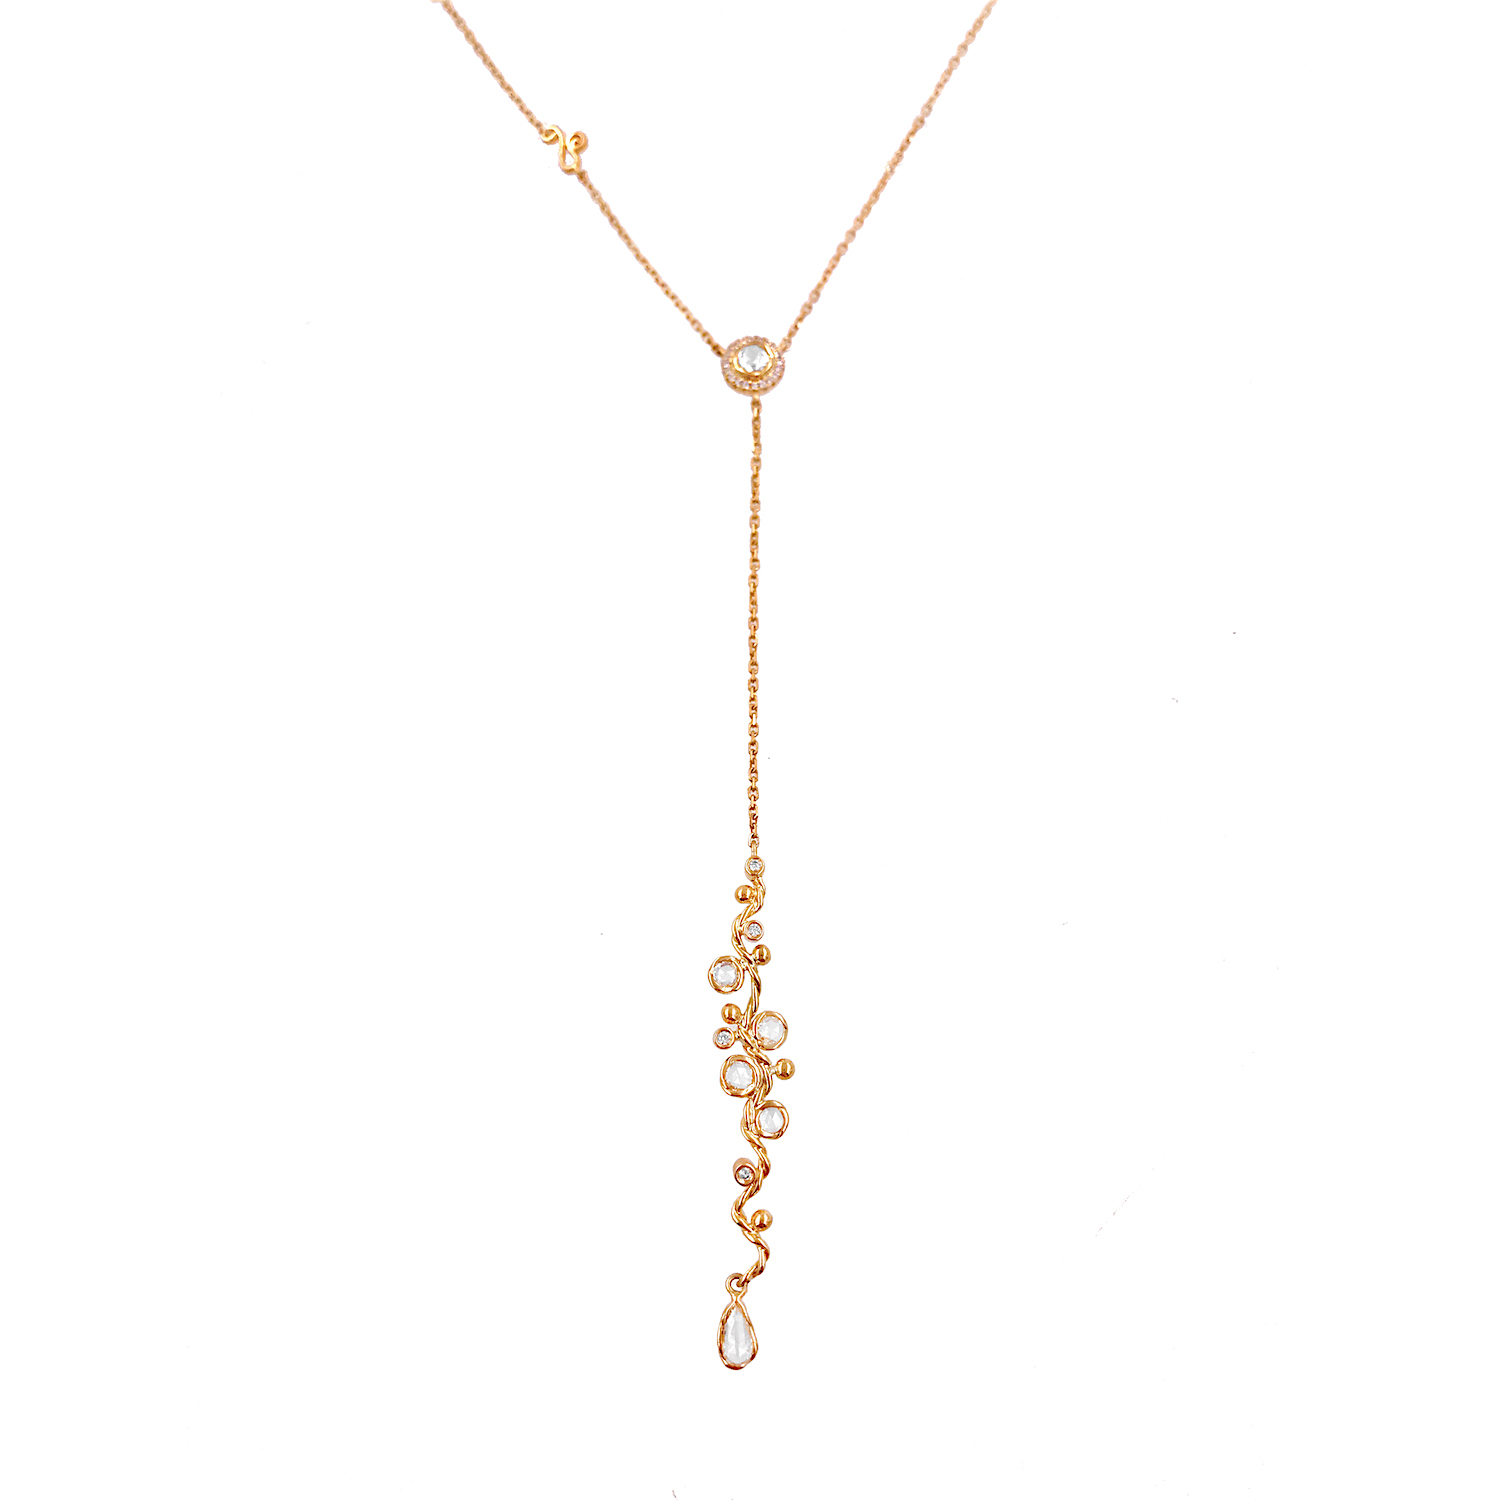 74-Signature-Free-Hand-Wavy-Twist-Scattered-Rose-Cut-Diamond-Lariat-Y-Necklace_5362S